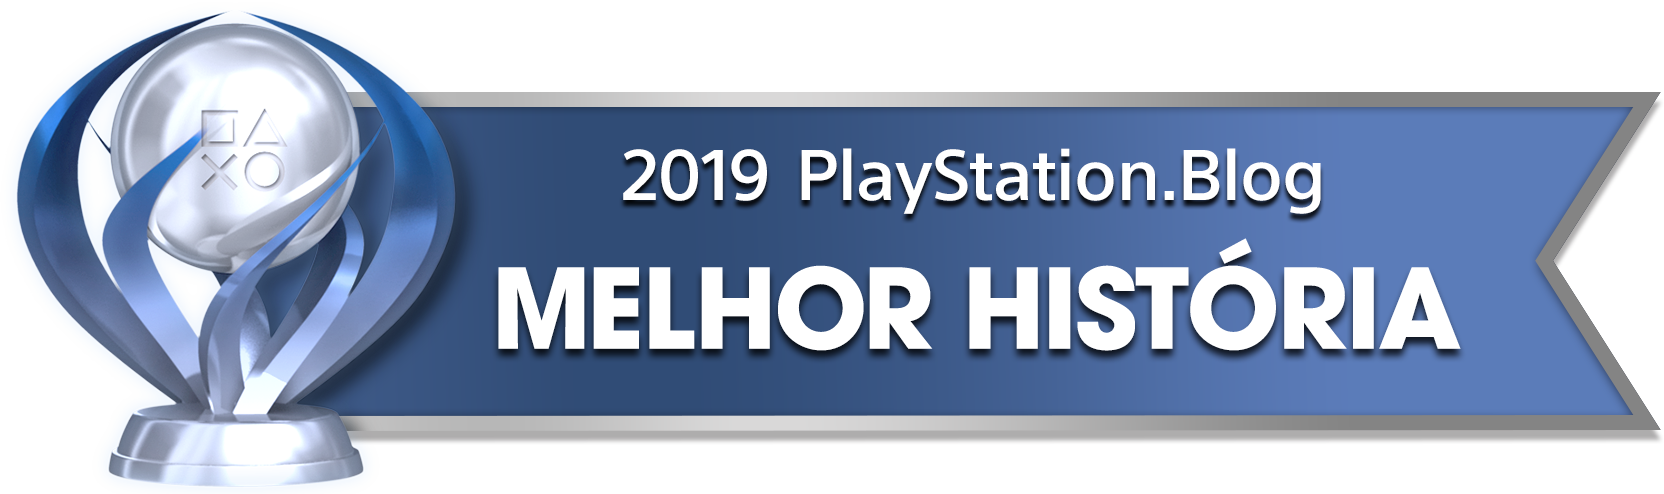 PS Blog Game of the Year 2019 - Best Narrative - 1 - Platinum